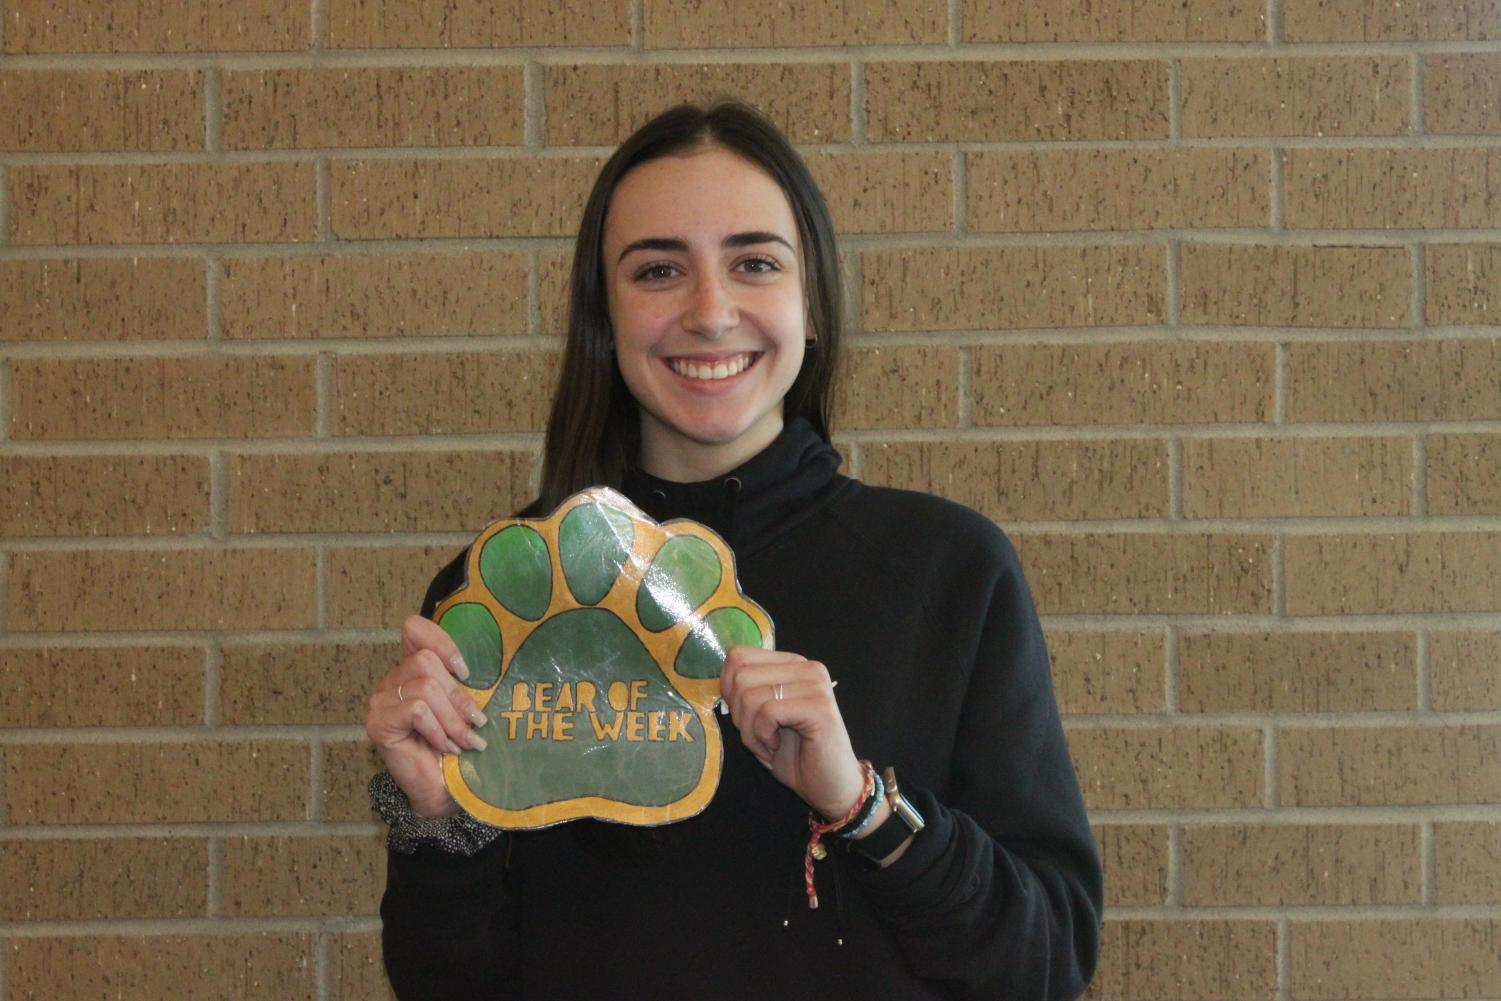 Junior Kylie Gross is the Bear of the Week.